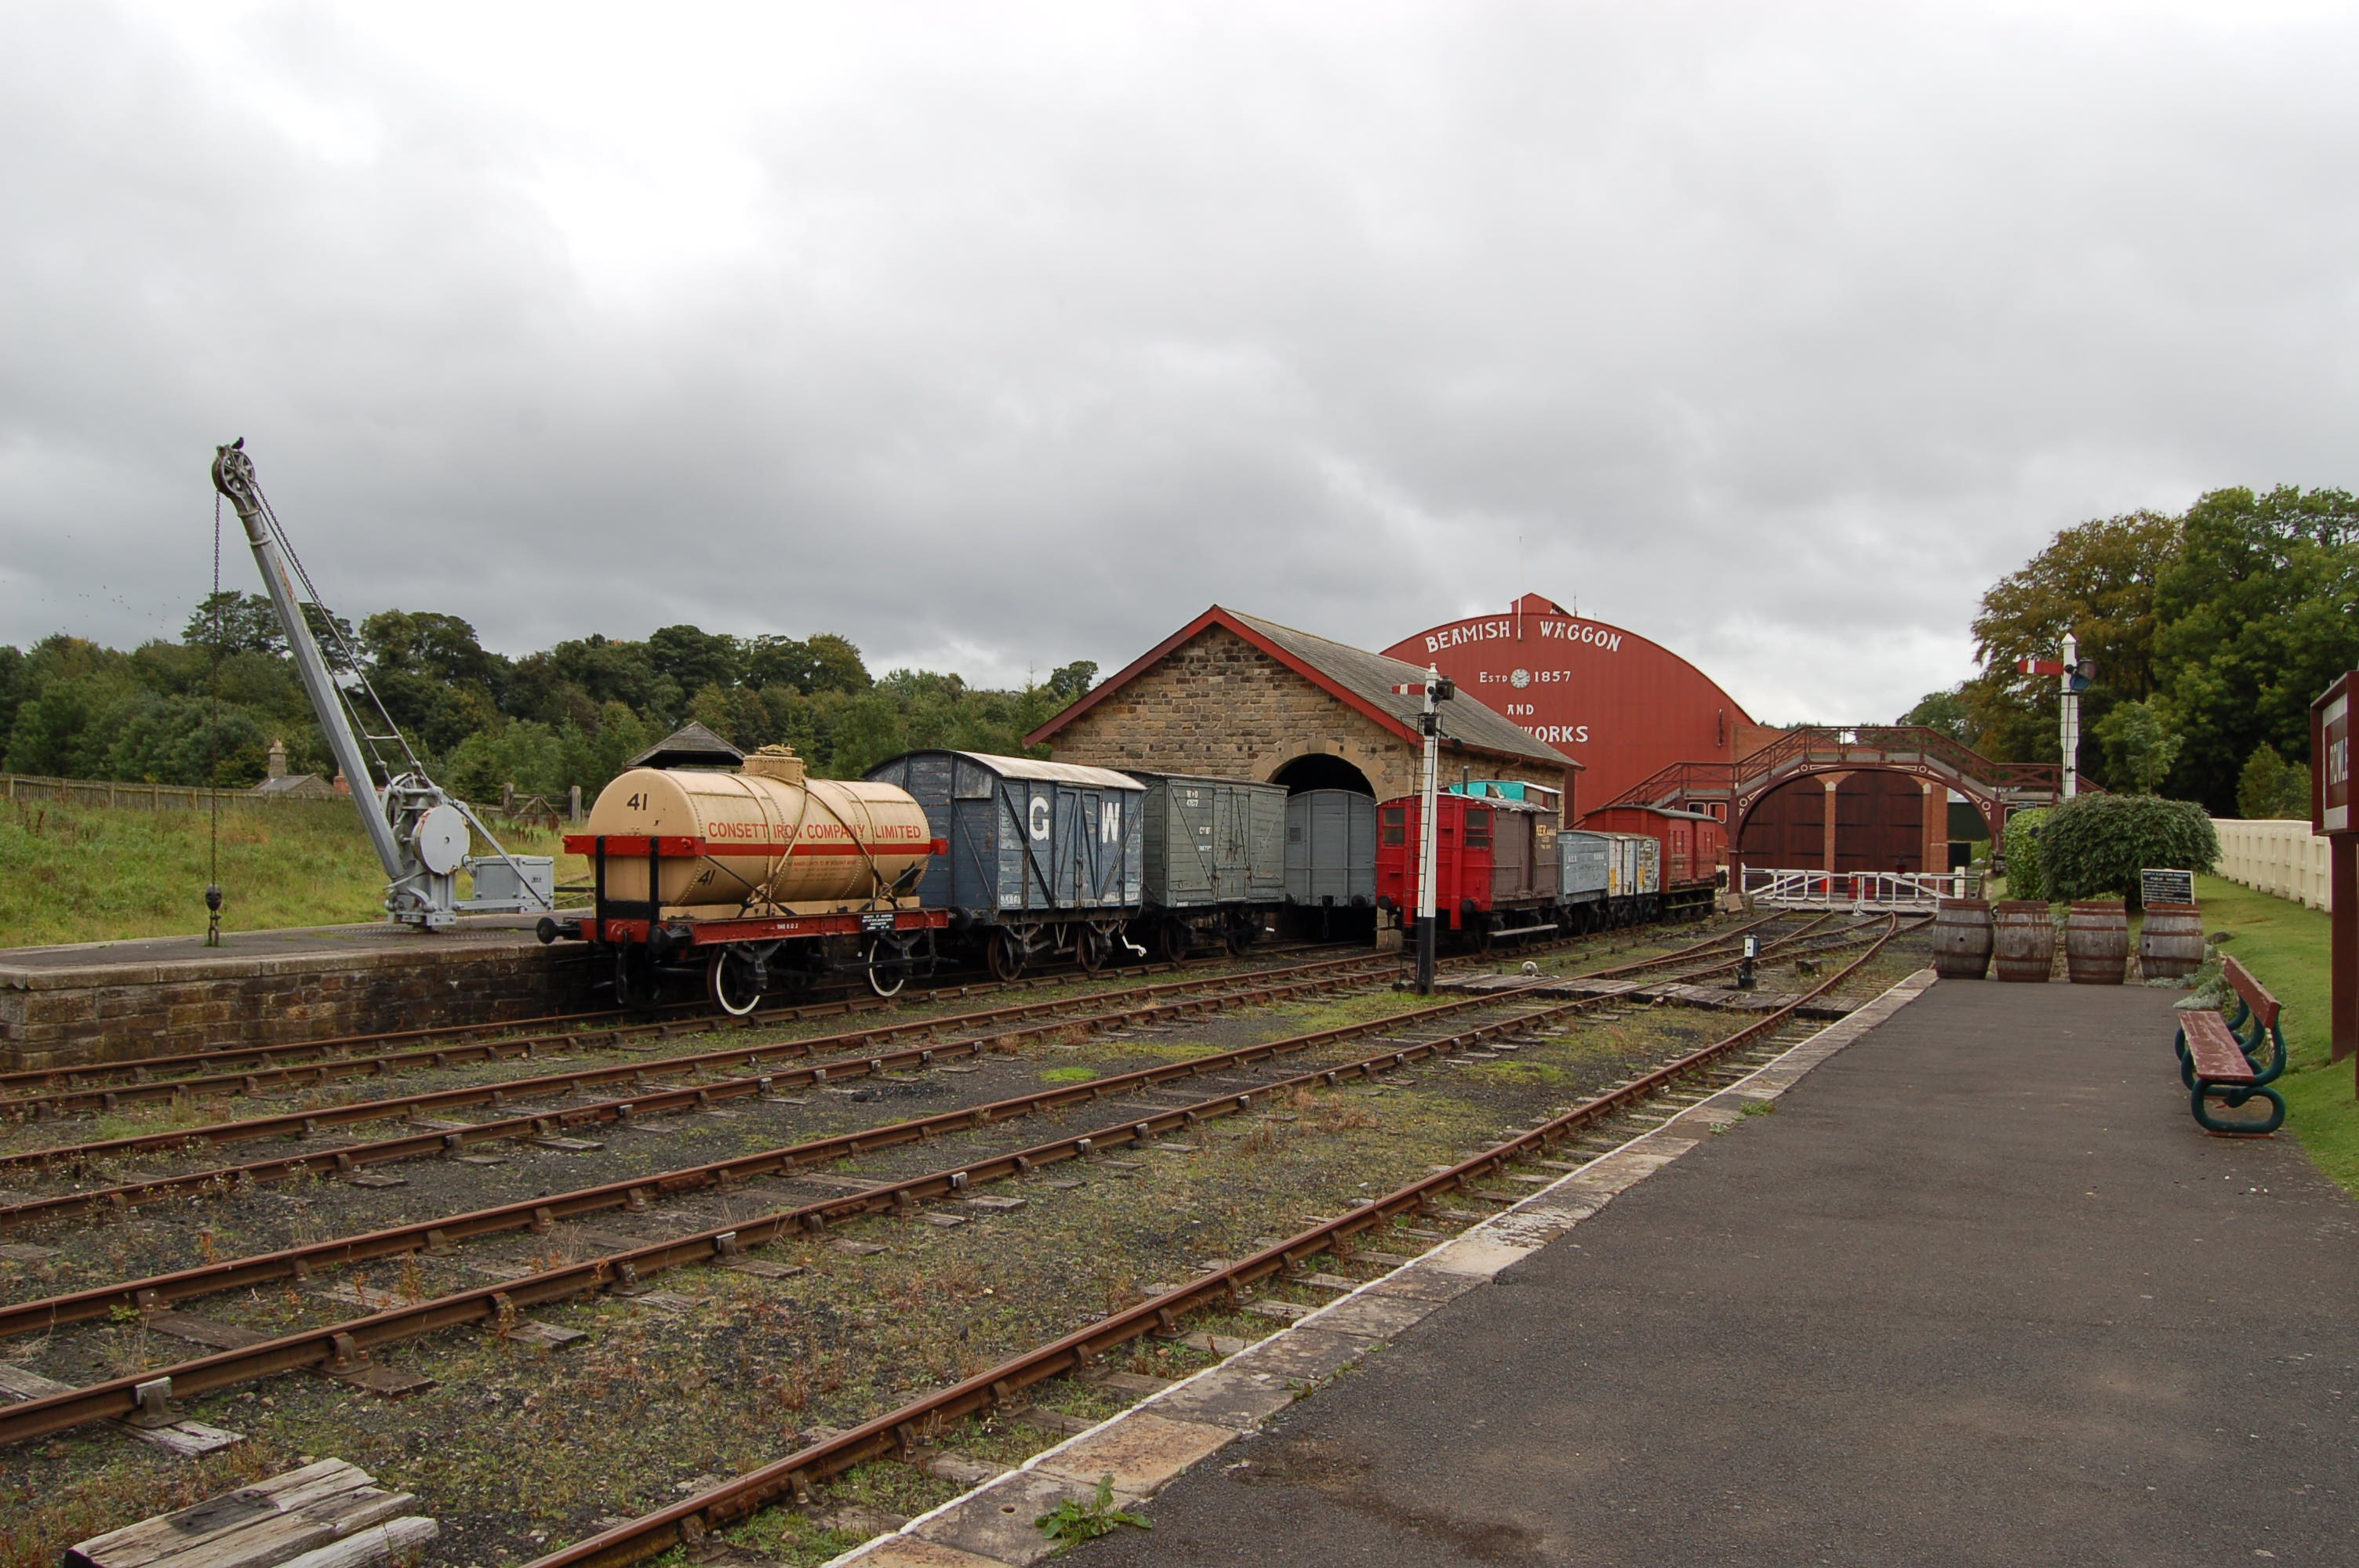 File:Colliery yard, Beamish Museum, 11 September 2011 (14